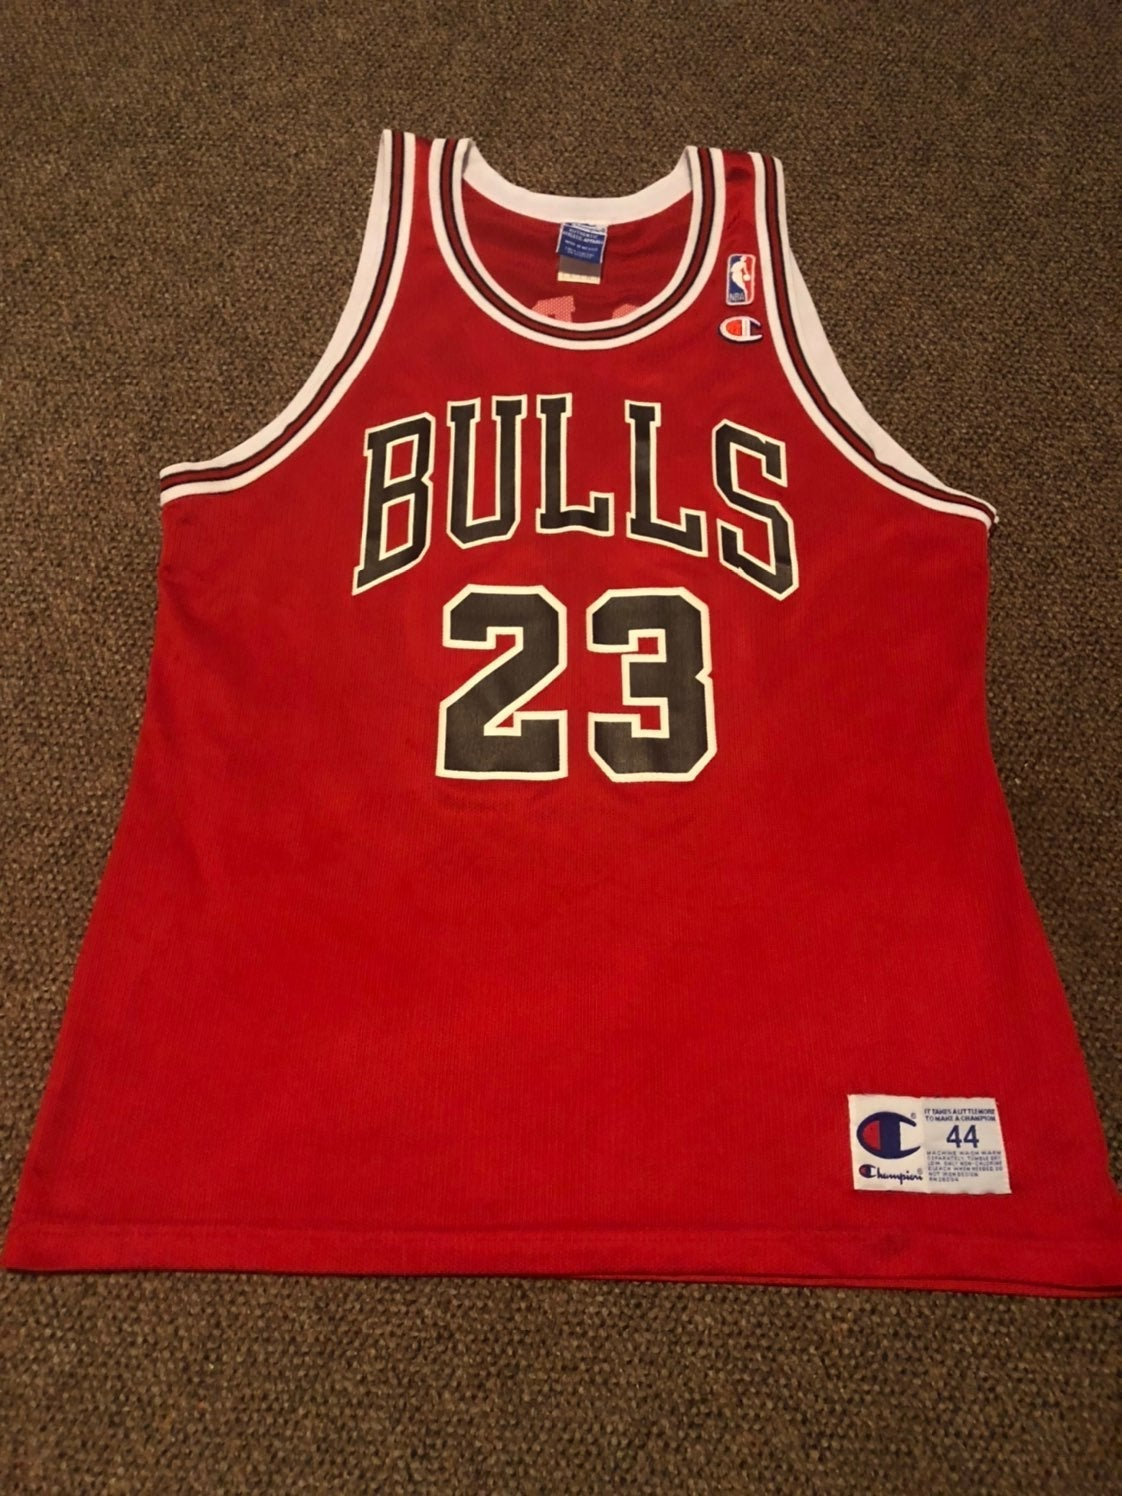 100% Authentic Jordan Champion Jersey